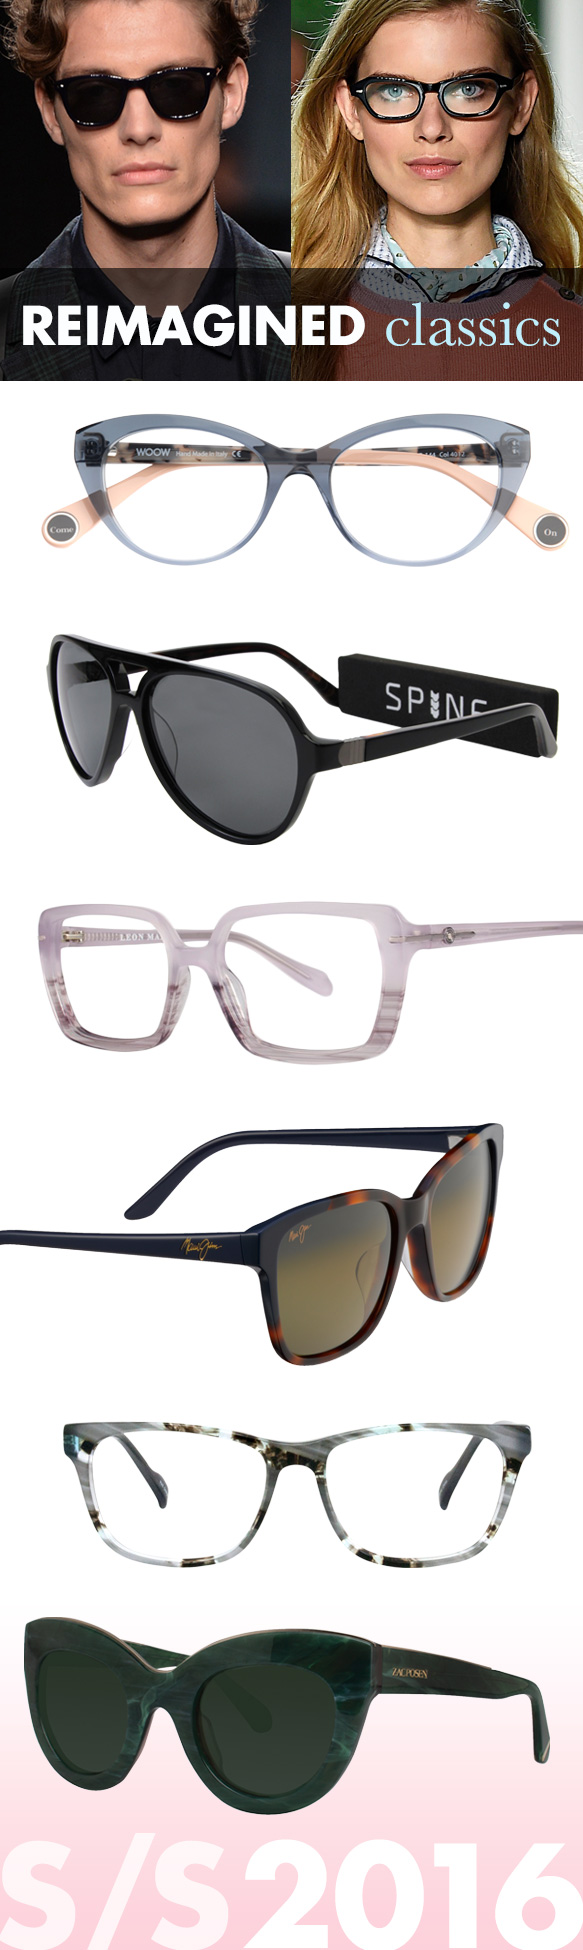 WOOW (Come On 1), SPINE (SP7002), Leon Max (Leon 4031), Maui Jim (Moonbow), Chemistrie by Eyenavision (Harper), Zac Posen (Jacqueline)